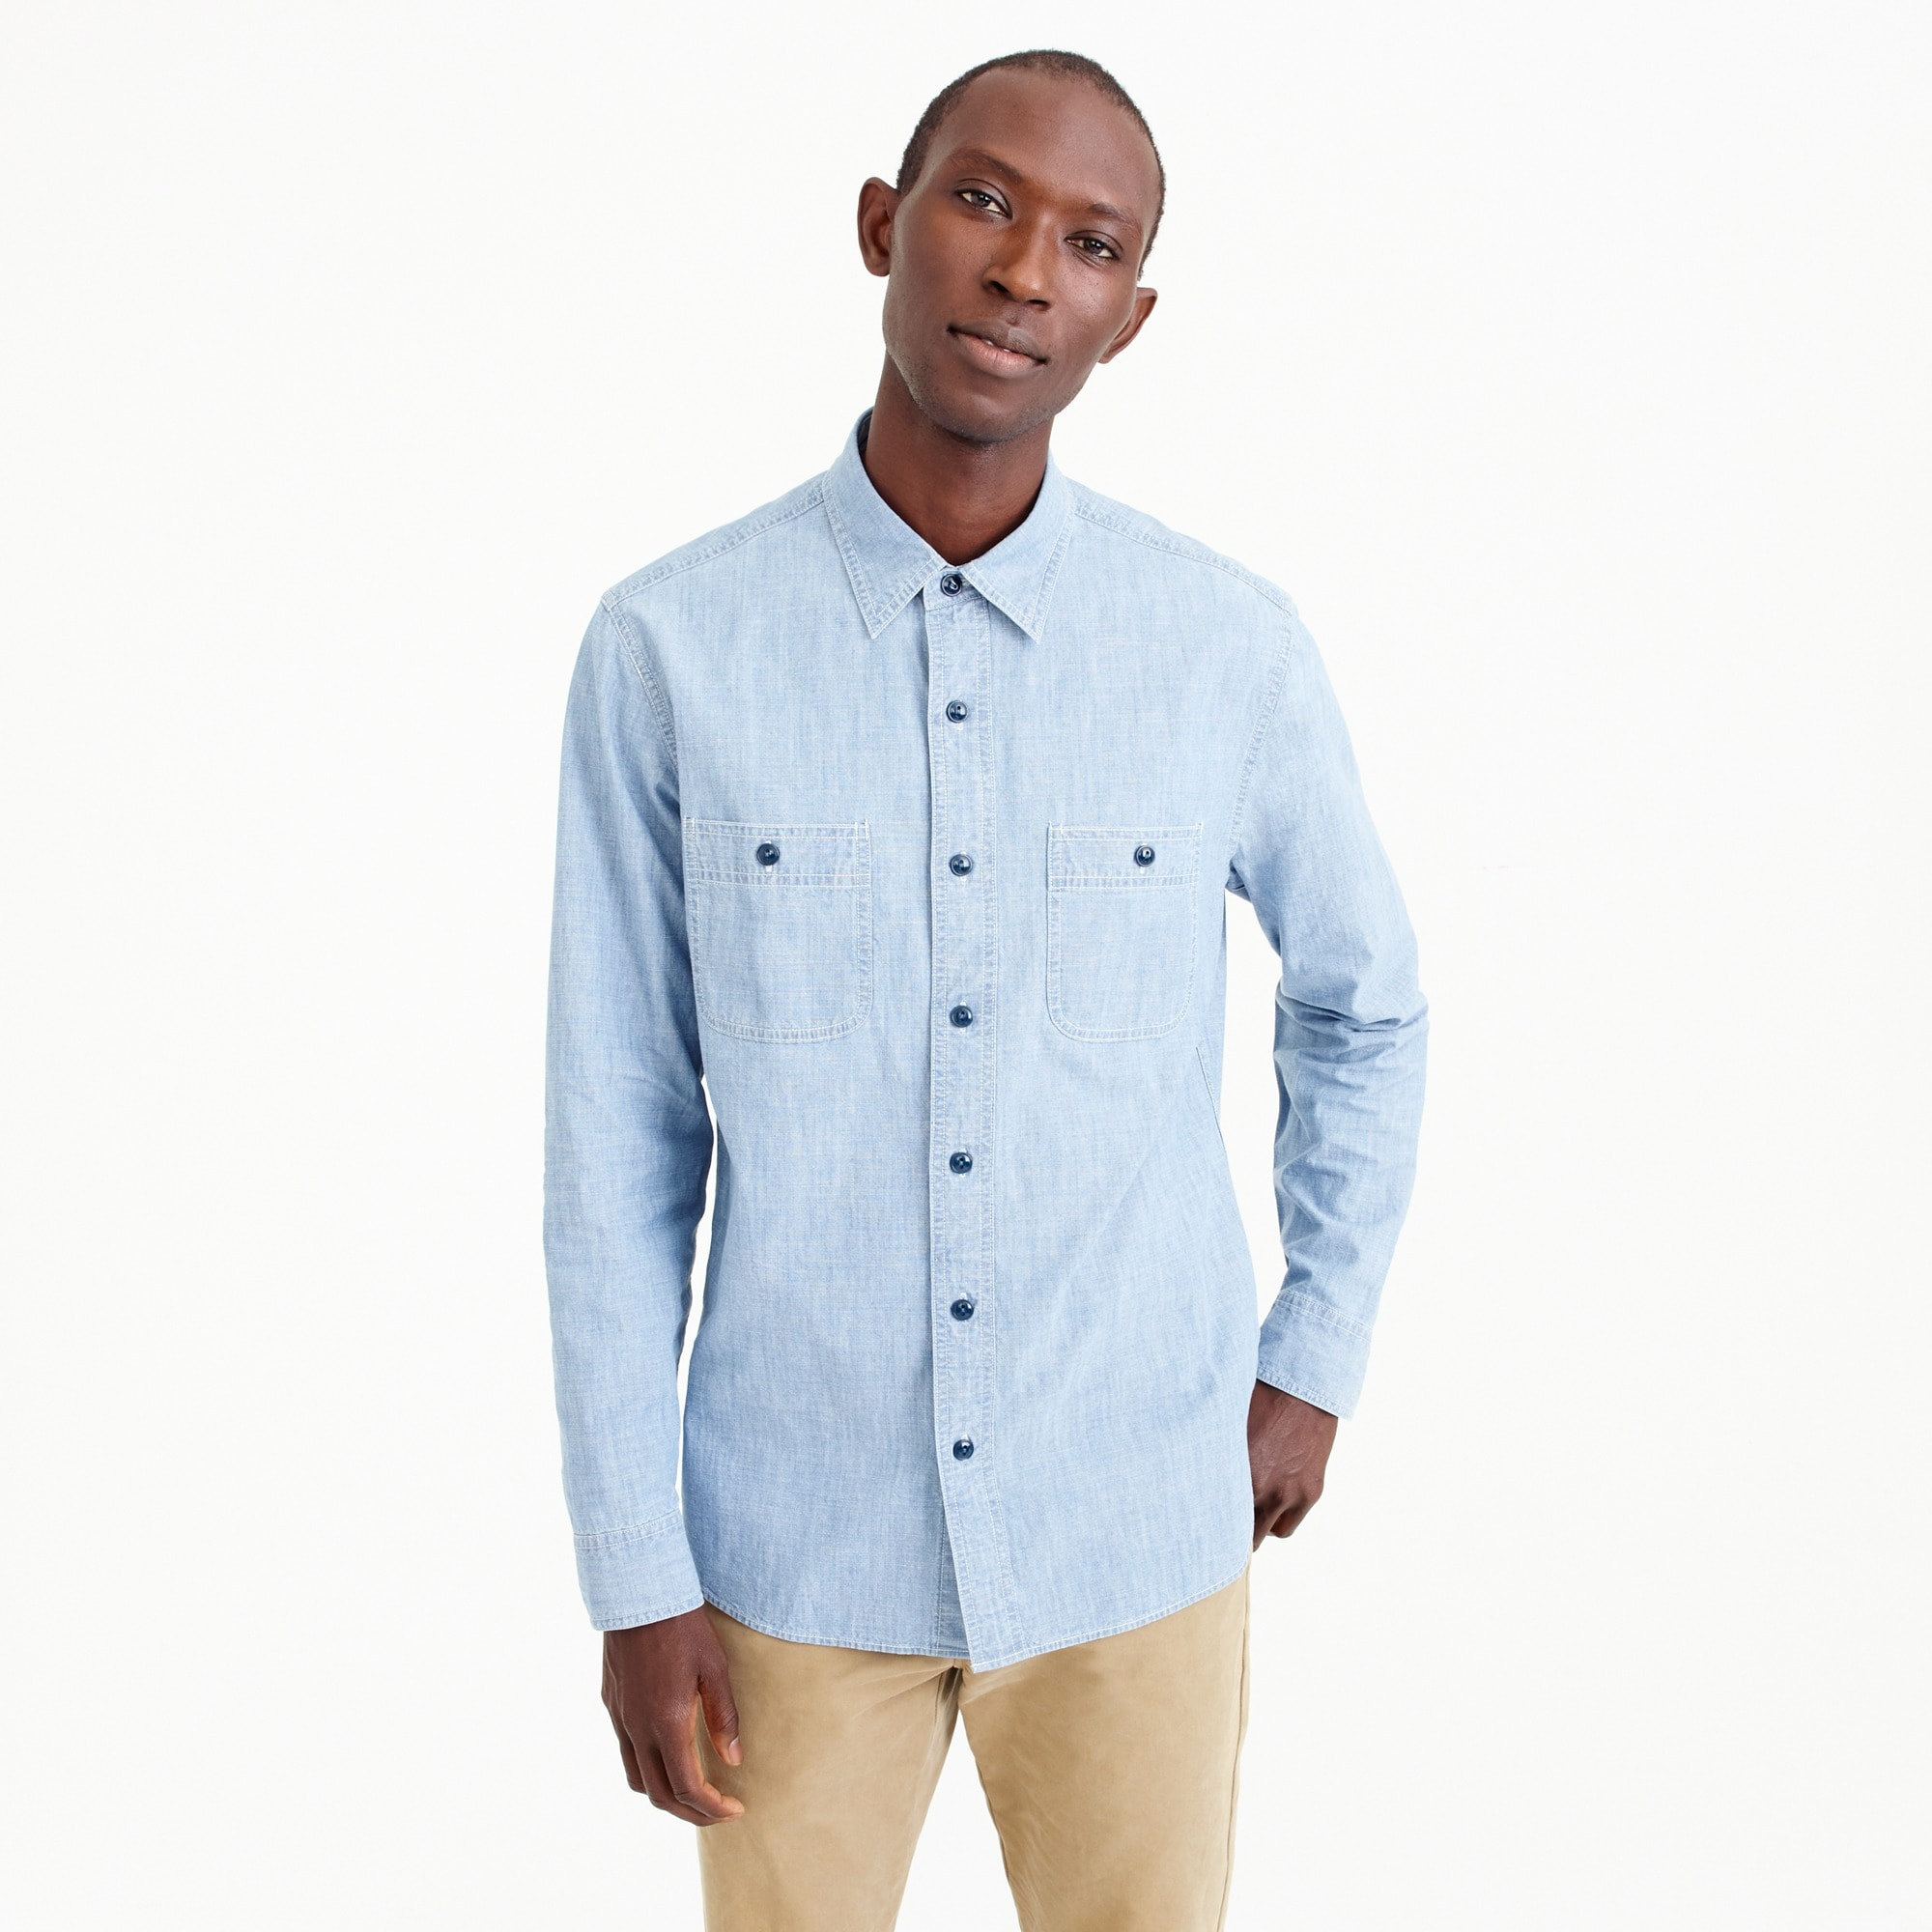 Image 1 for Wallace & Barnes chambray workshirt